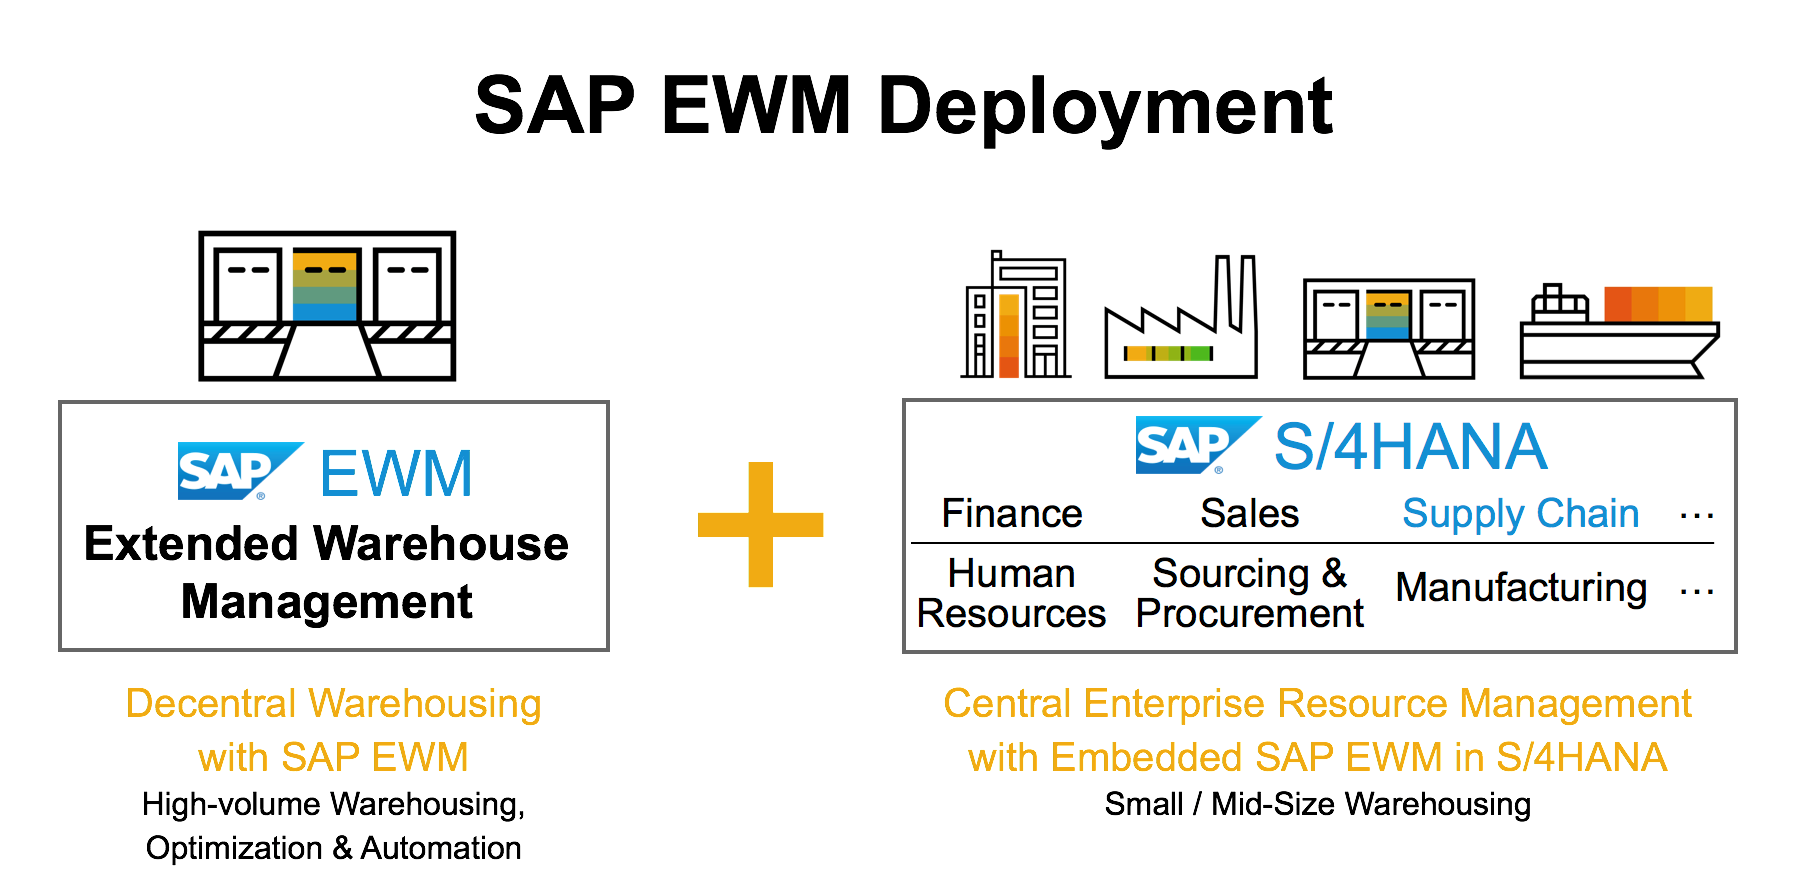 Sap extended warehouse management with s4hana 1709 sap blogs its a smart strategic move to make our proven warehousing software and the continuous innovation here also available in a centrally deployed erp suite nvjuhfo Gallery